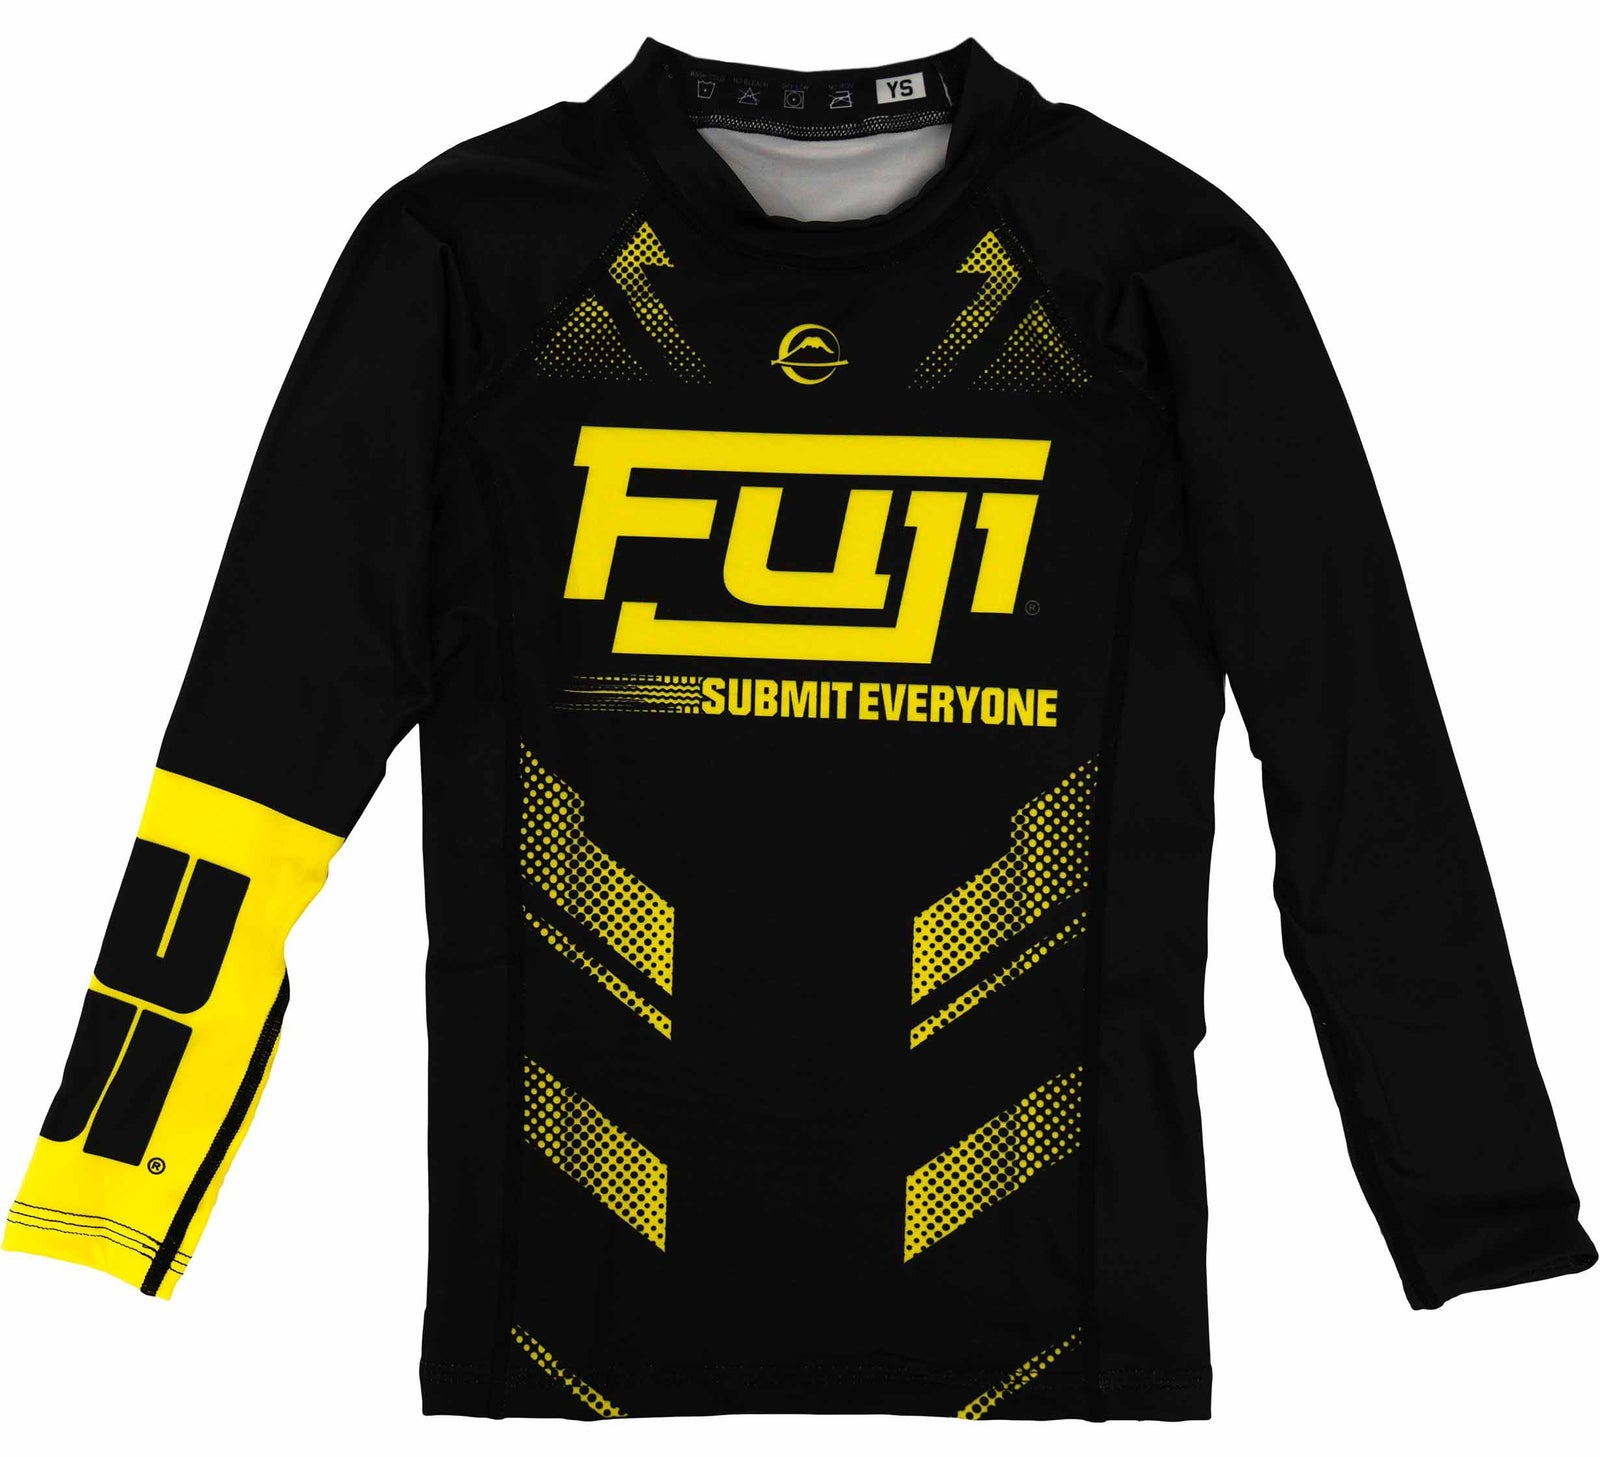 Sub Only Kids Rashguard